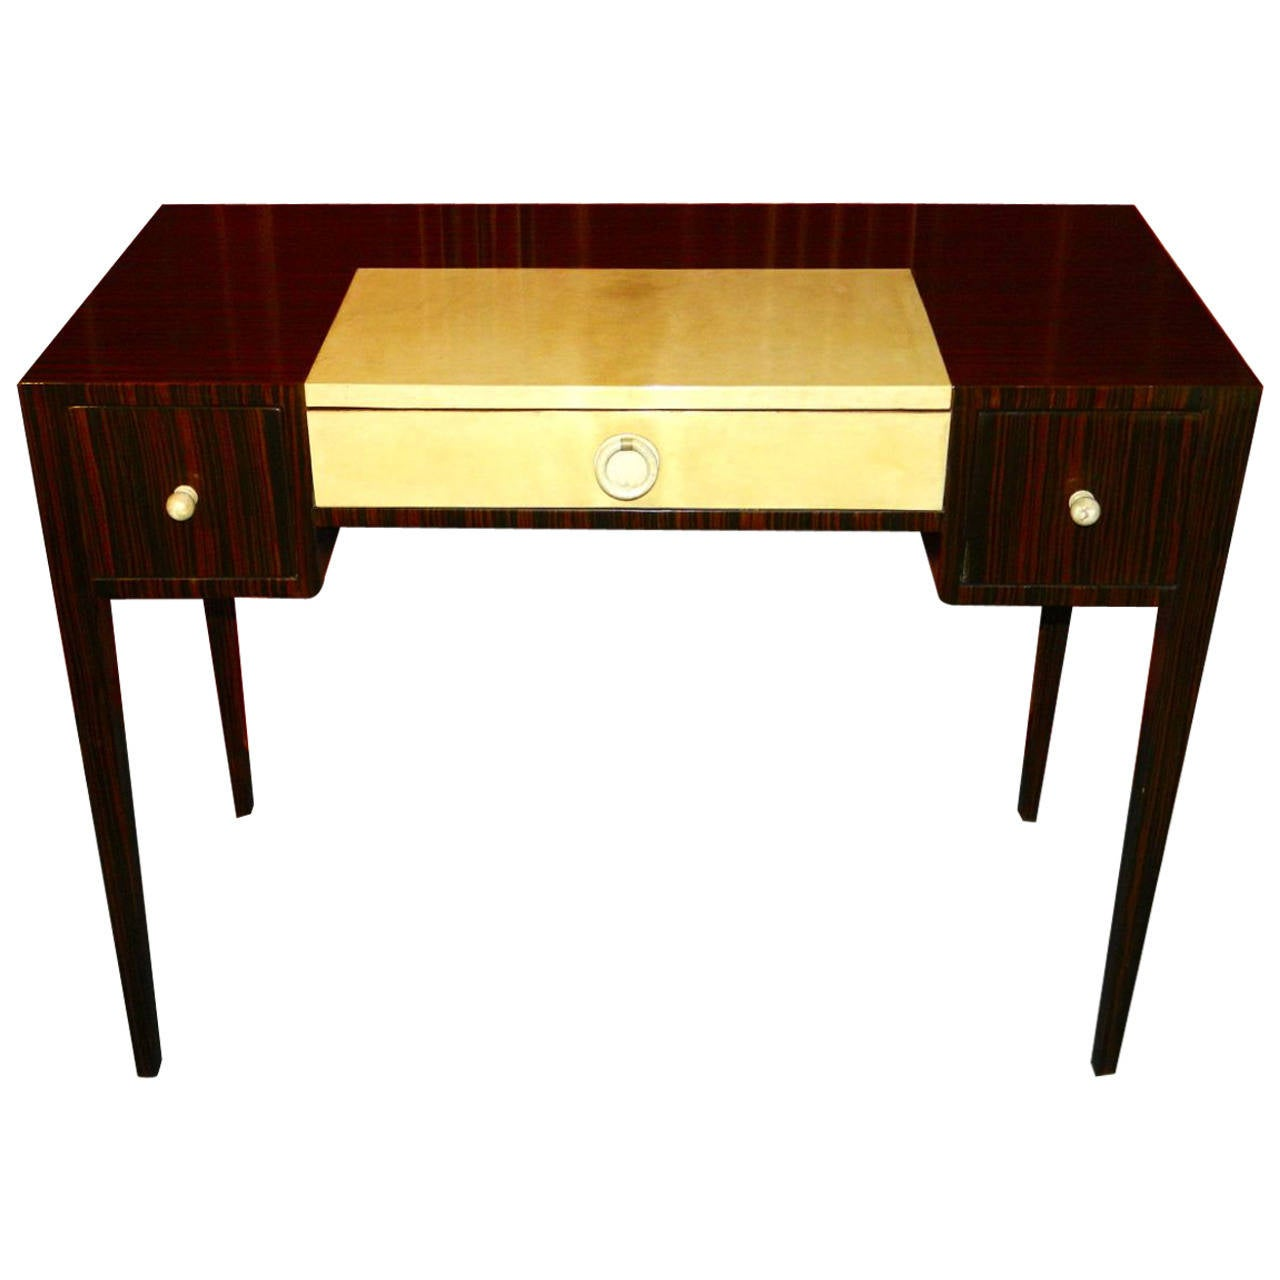 Petite art deco macassar writing or vanity desk at 1stdibs for Art deco writing